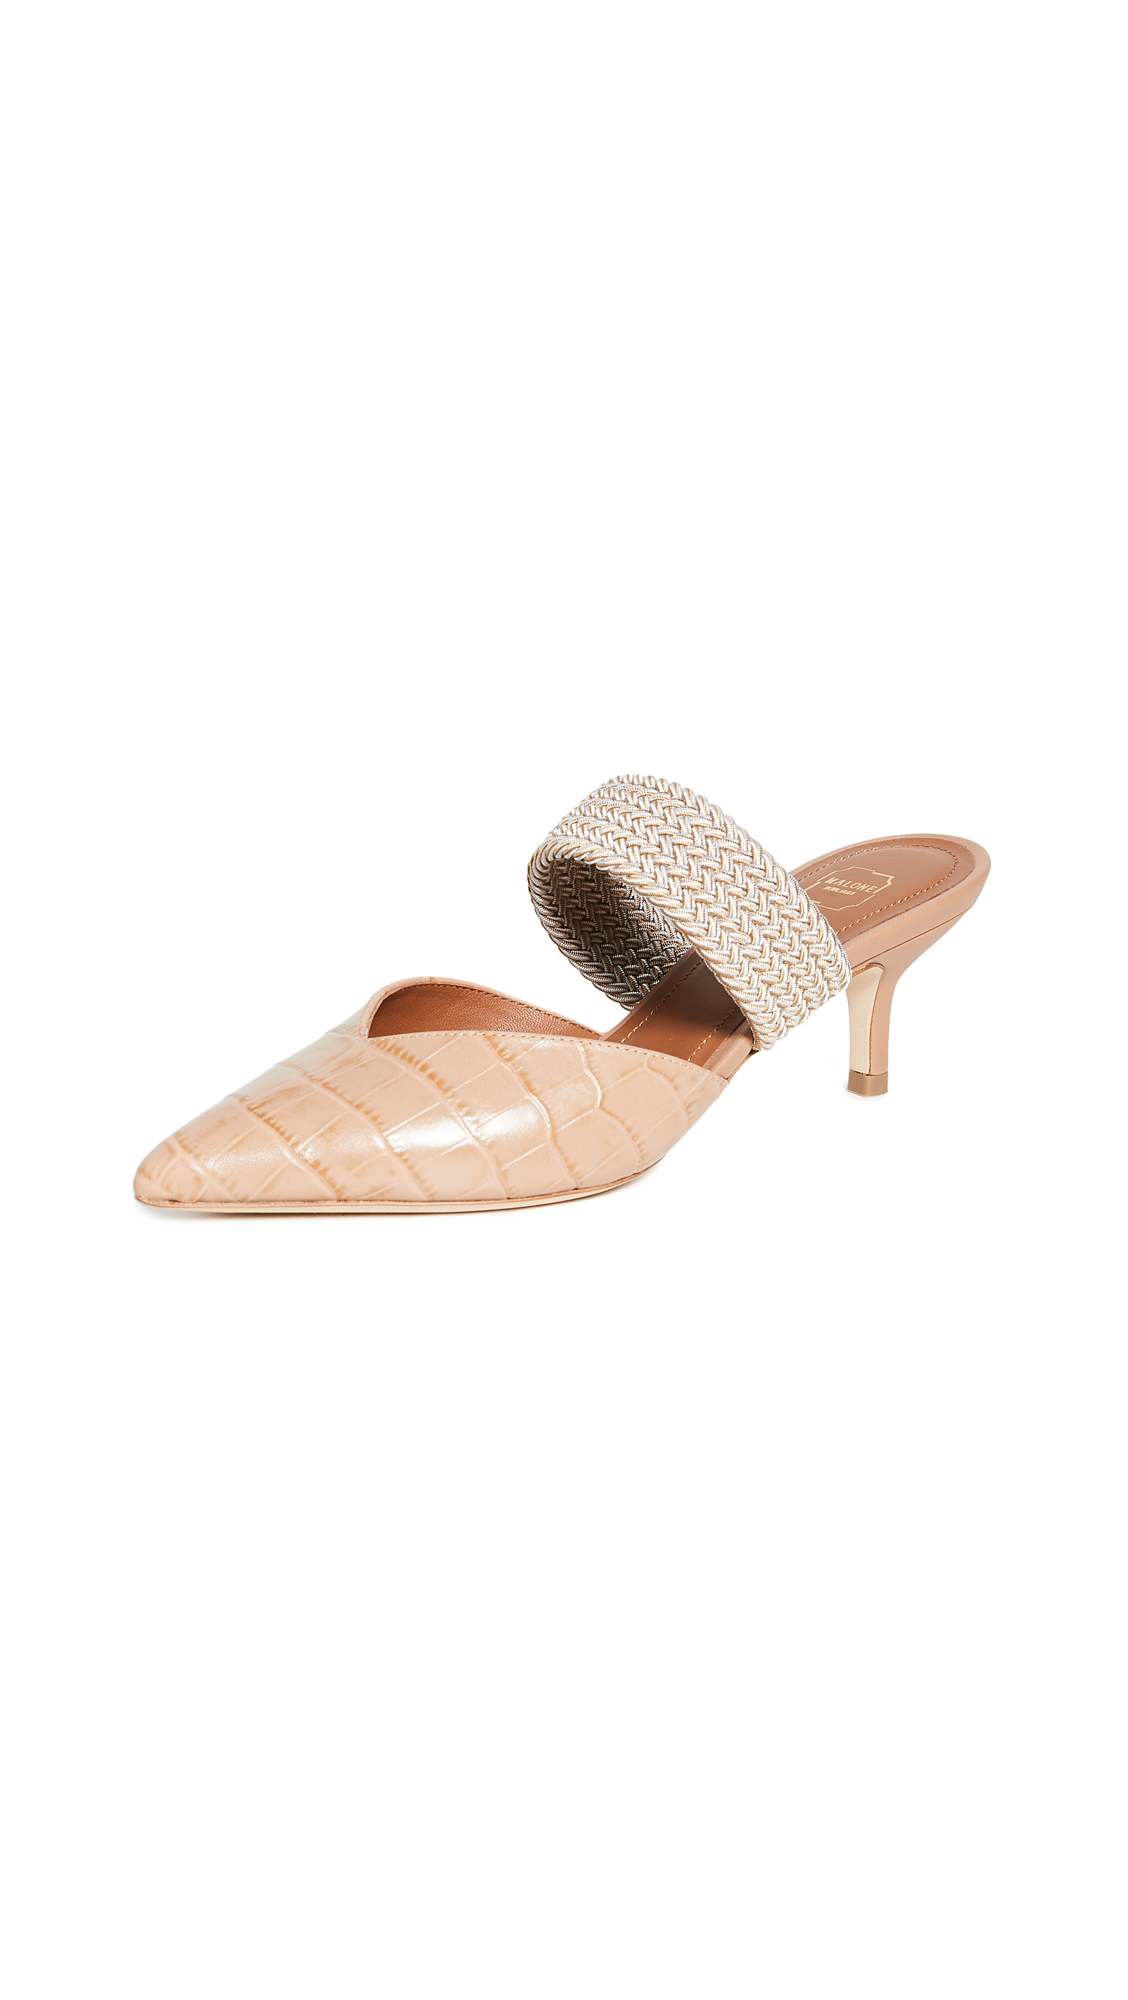 Buy Malone Souliers online - photo of Malone Souliers Maisie Mules 45mm